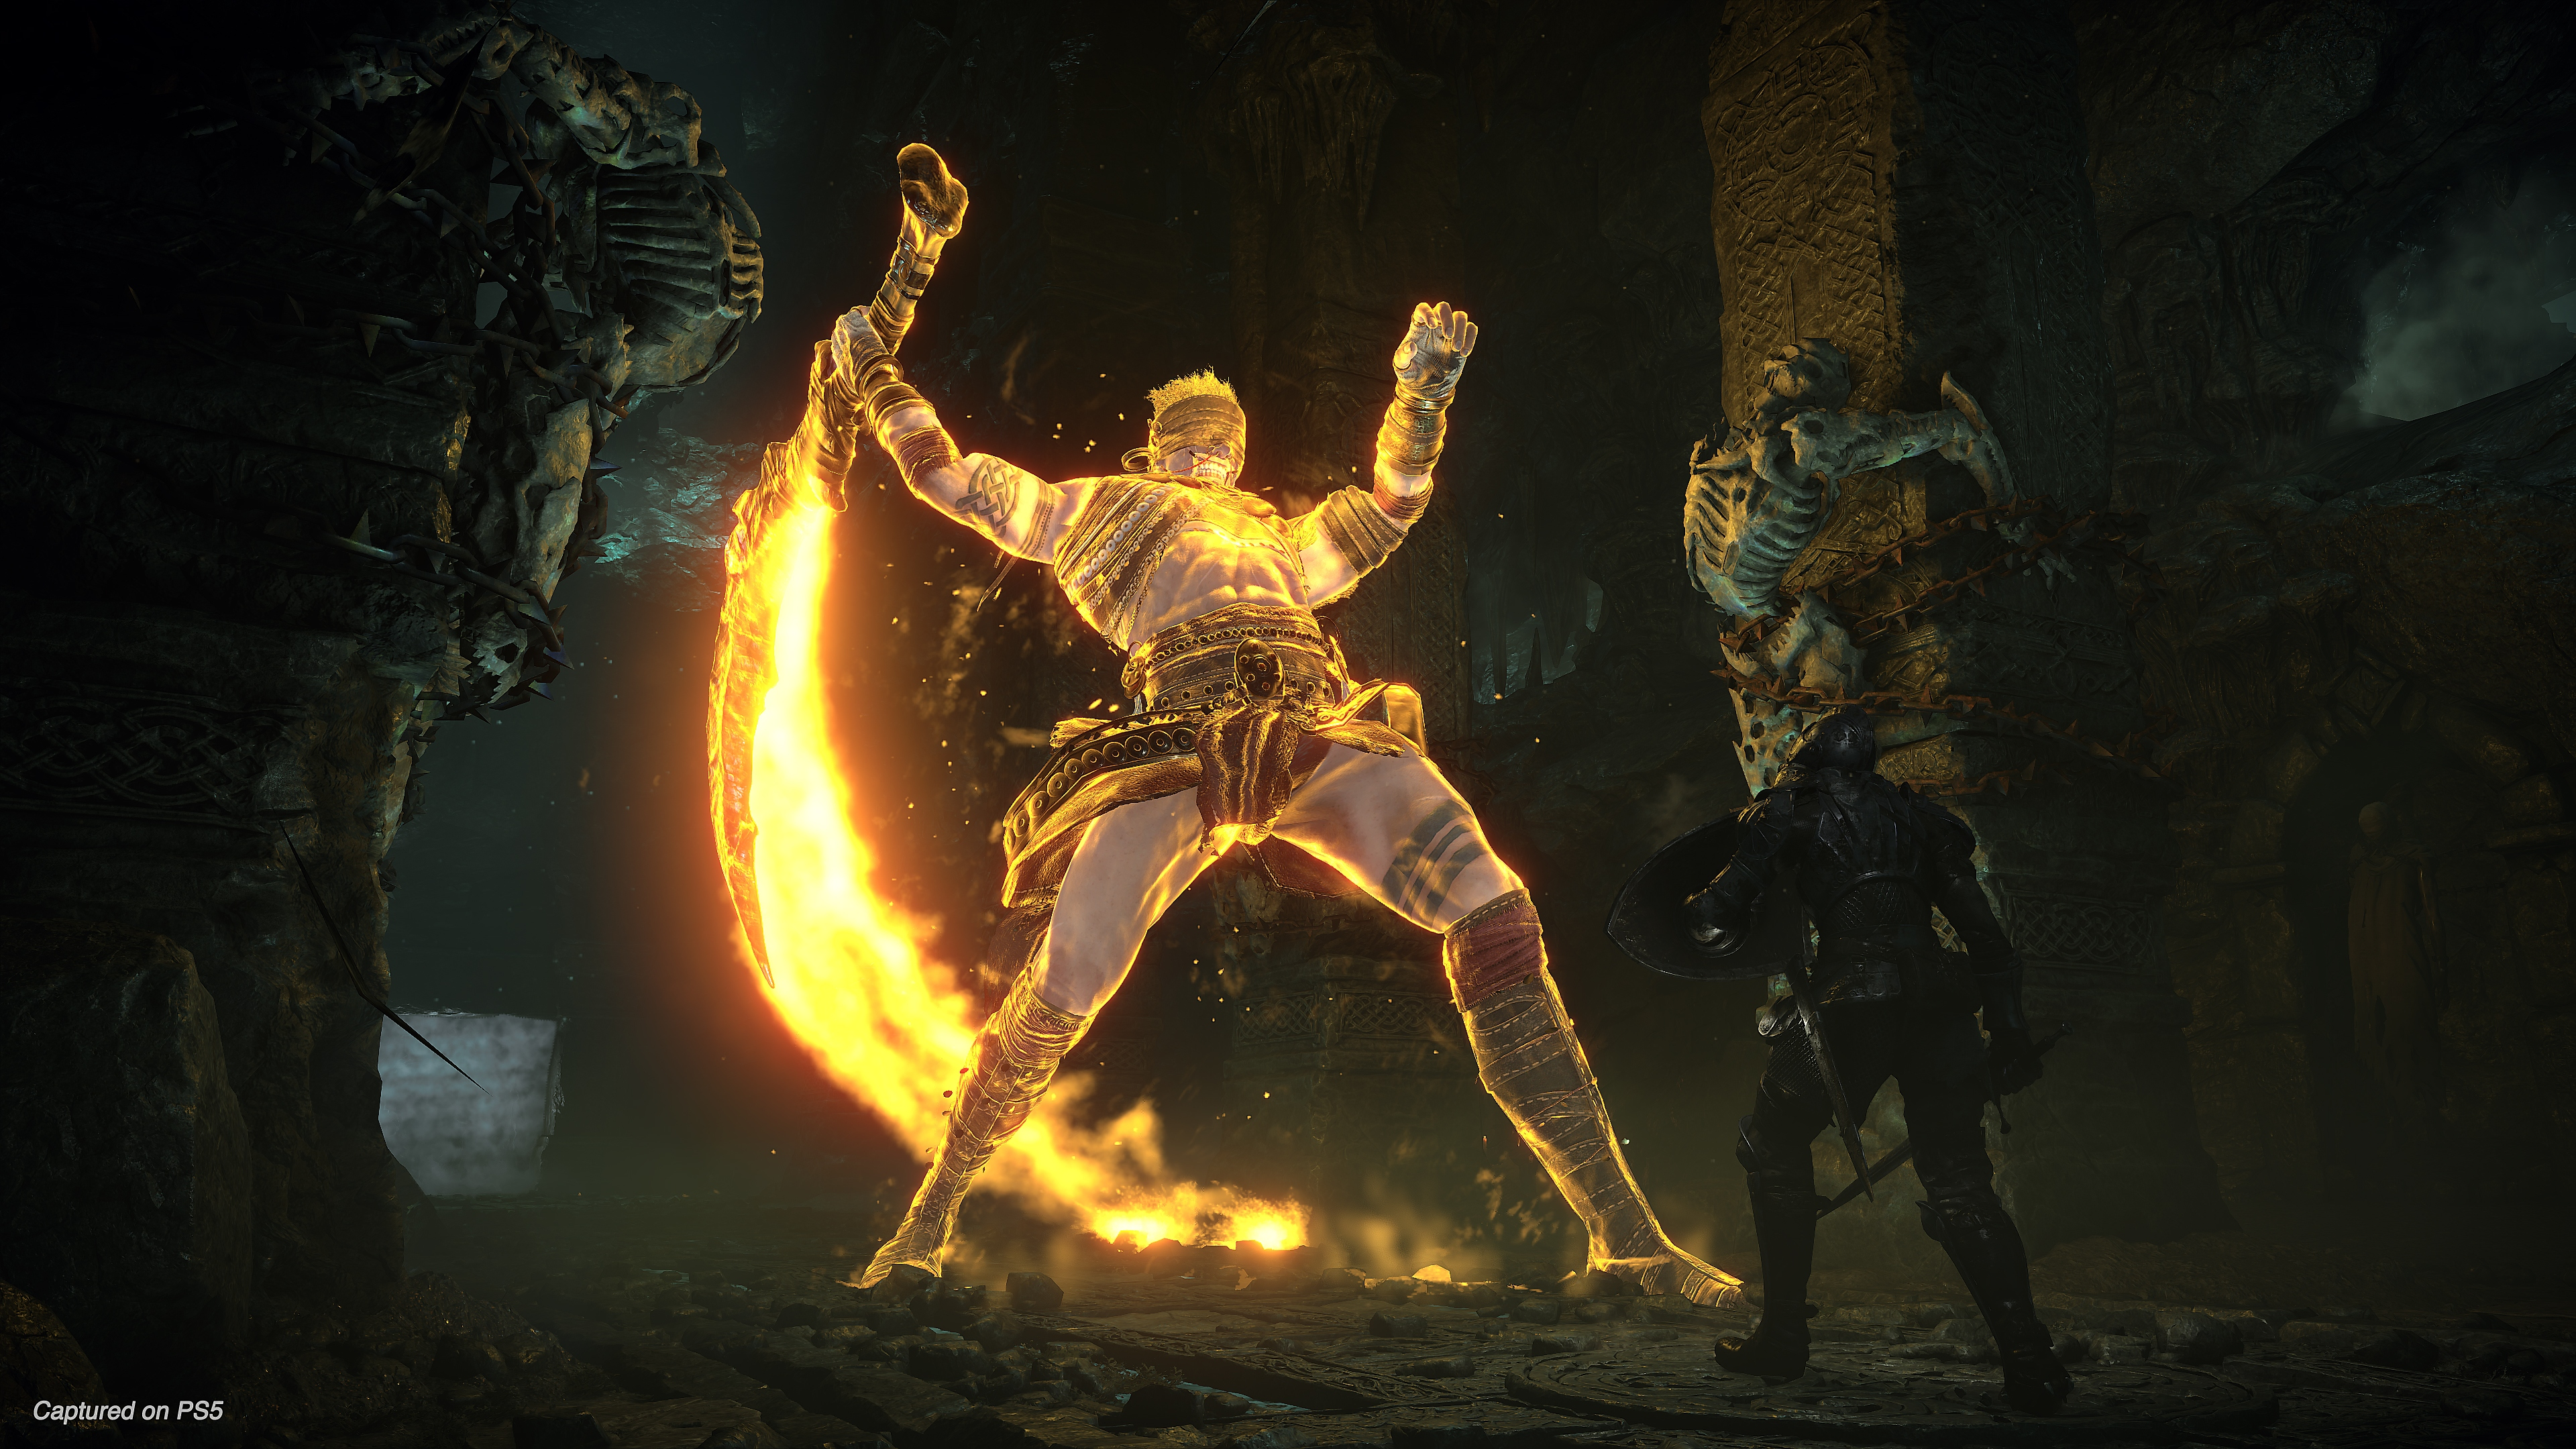 captura de pantalla de demon's souls